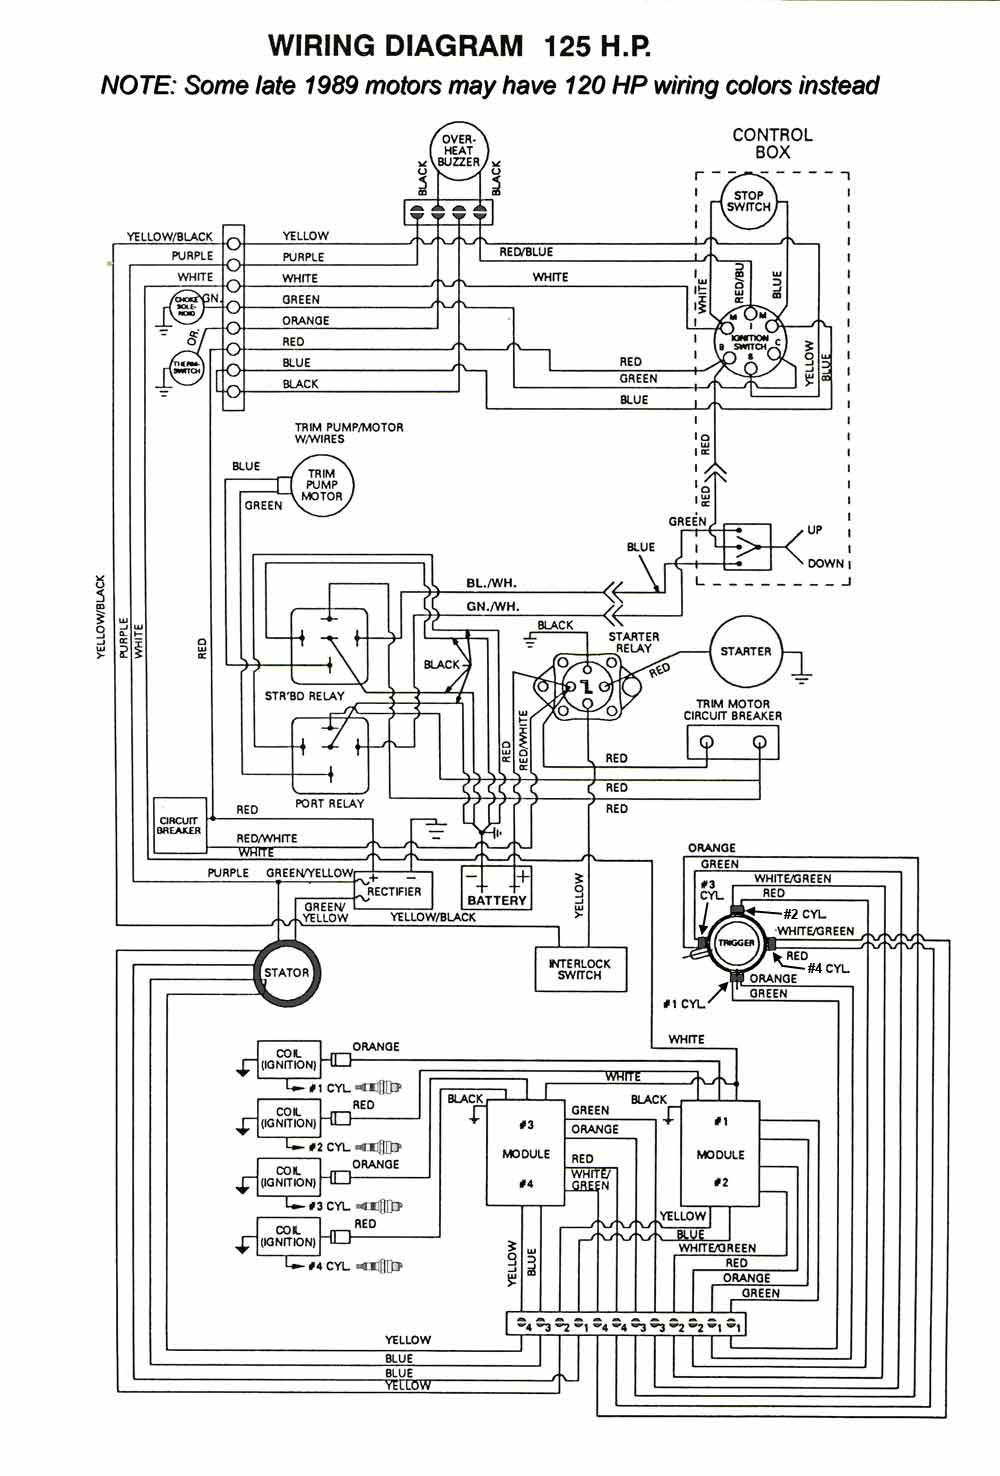 hight resolution of chrysler outboard wiring diagrams mastertech marine rh maxrules com 1987 force 125 wiring diagram 25 hp